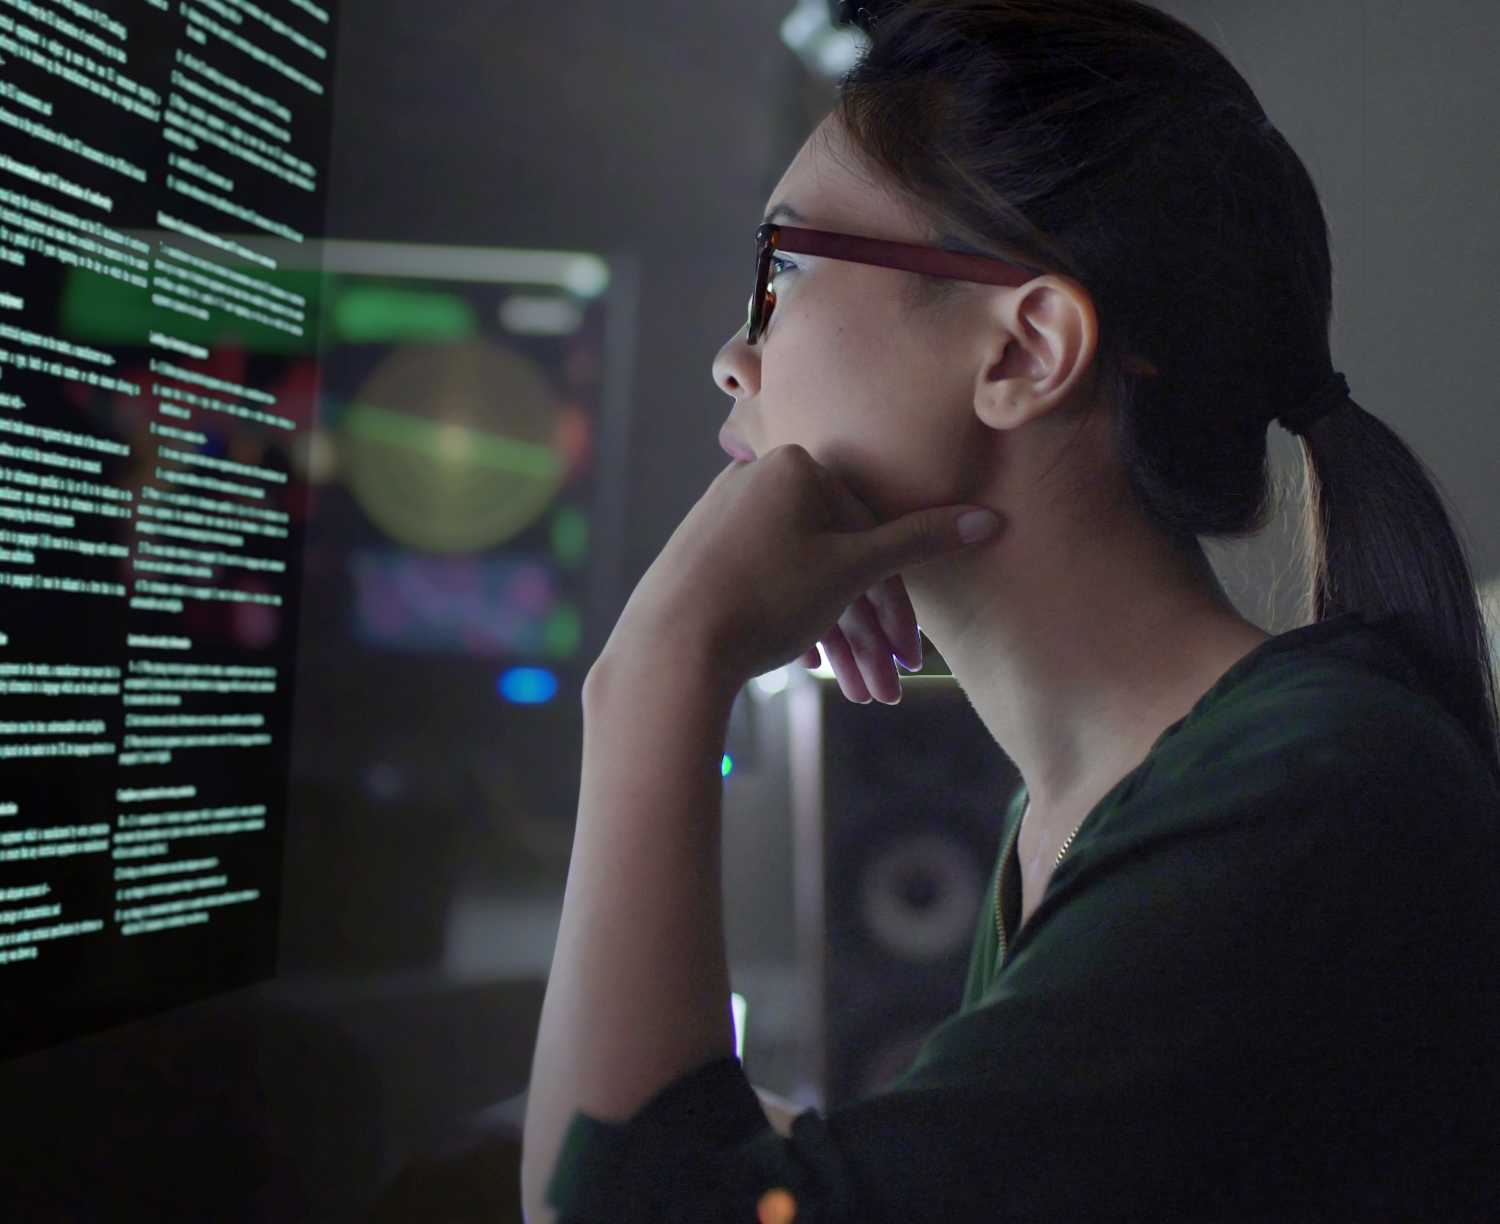 A young woman concentrating on auditing data | Hero